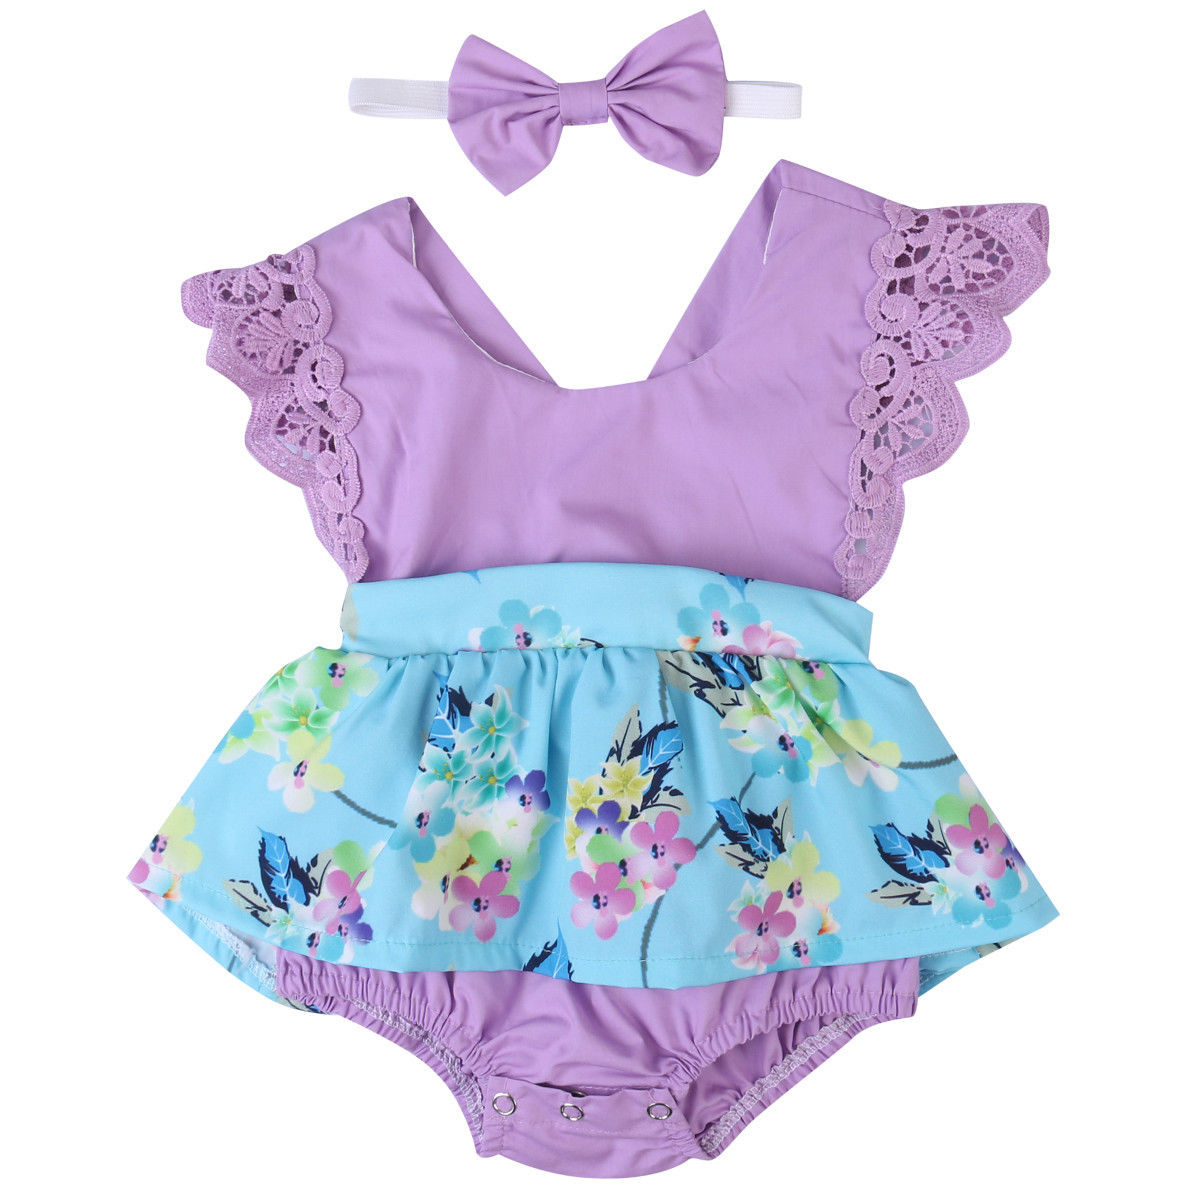 Summer Baby Girl Clothes Sleeveless Floral Romper Dress+headband 2Pcs Outfits Sunsuit